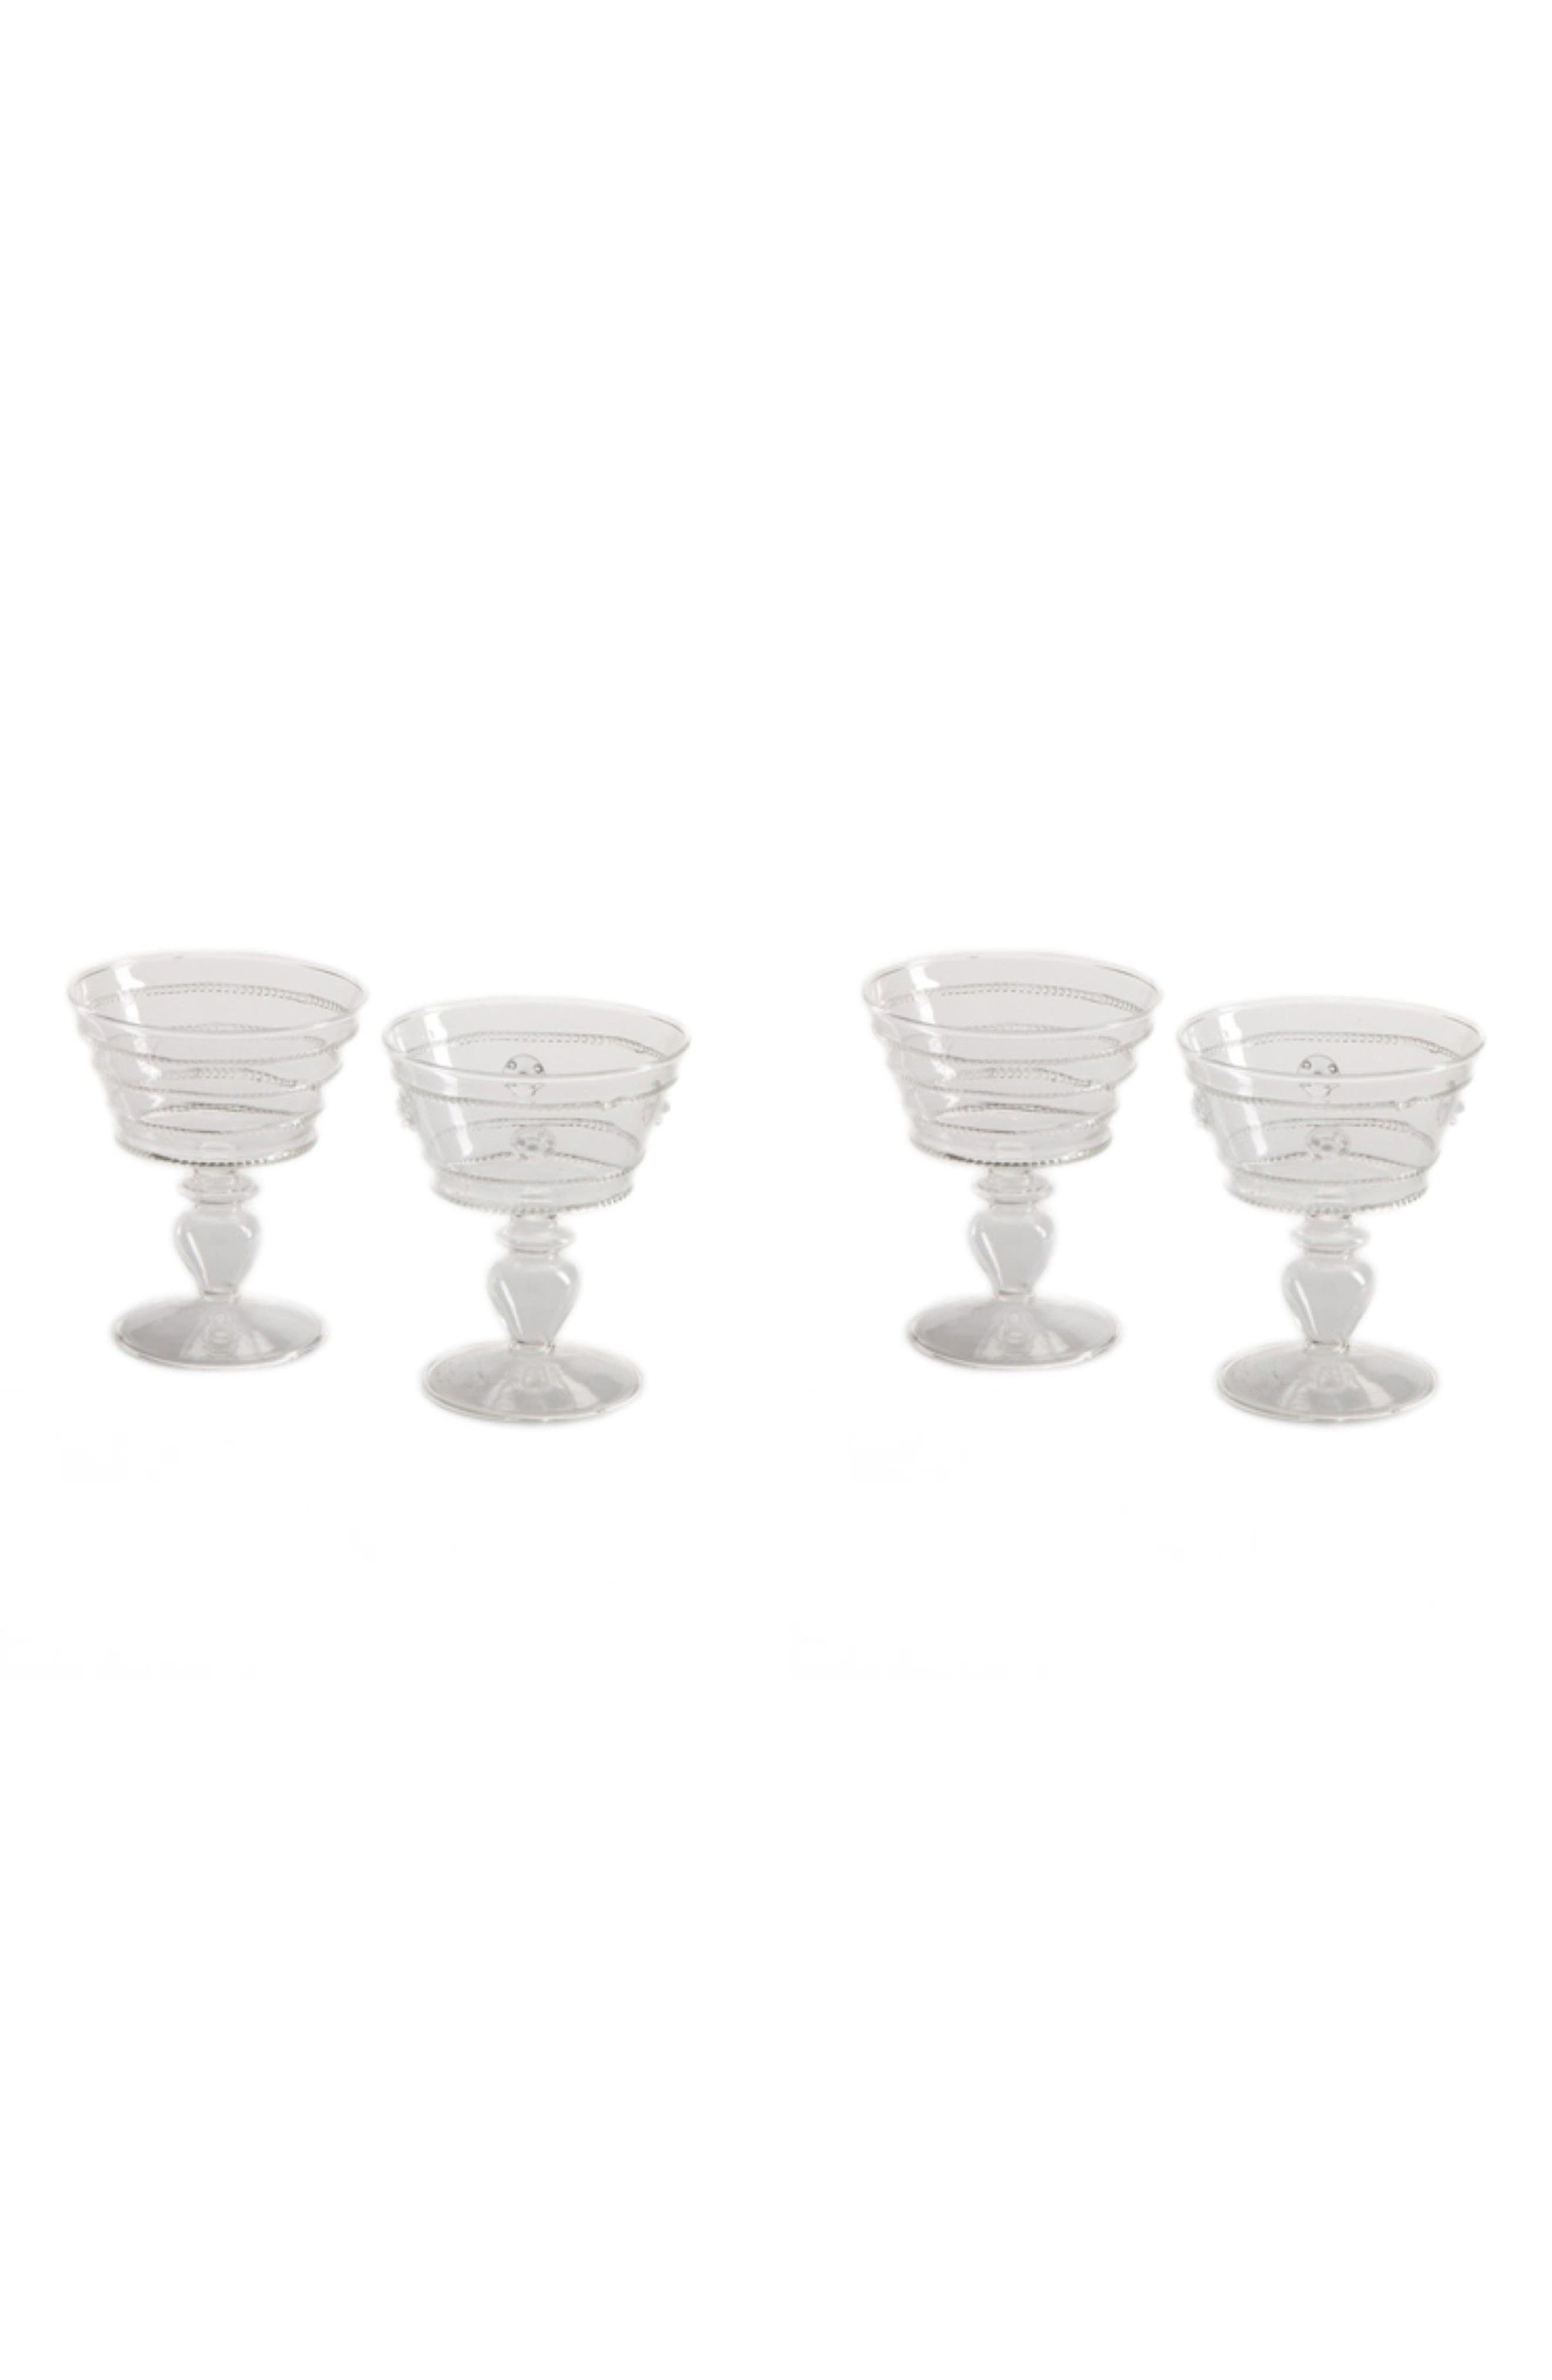 Alternate Image 1 Selected - Zodax Set of 4 Compote Bowls